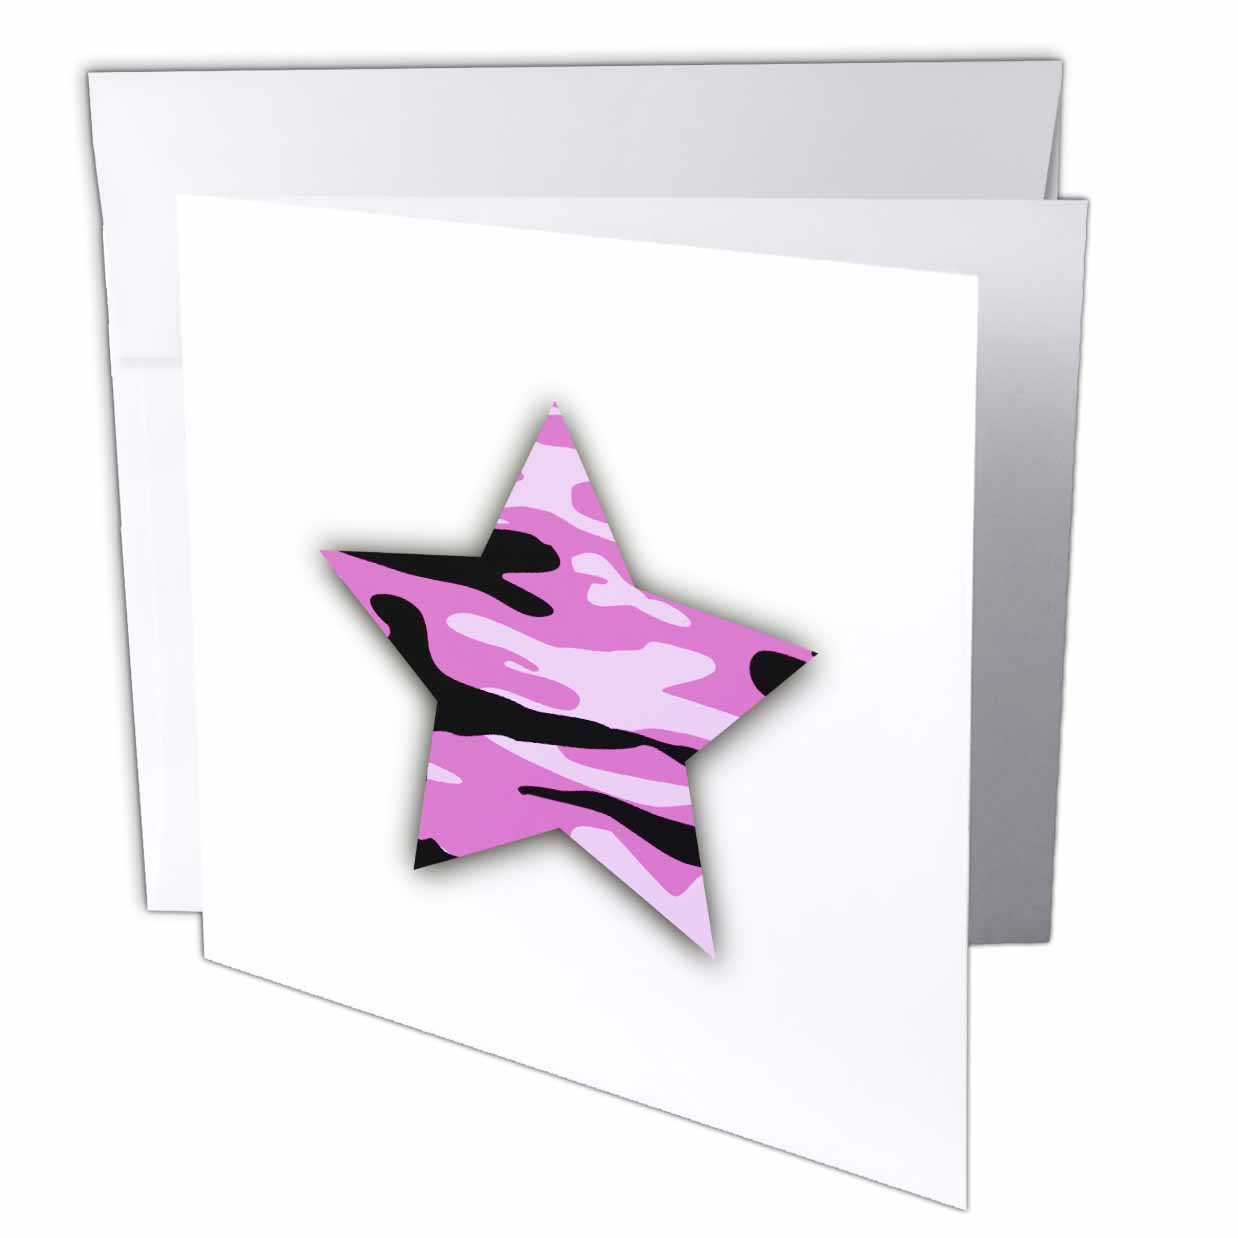 3dRose Pink Camo Star - girly army camouflage pattern - military soldier, Greeting Cards, 6 x 6 inches, set of 12